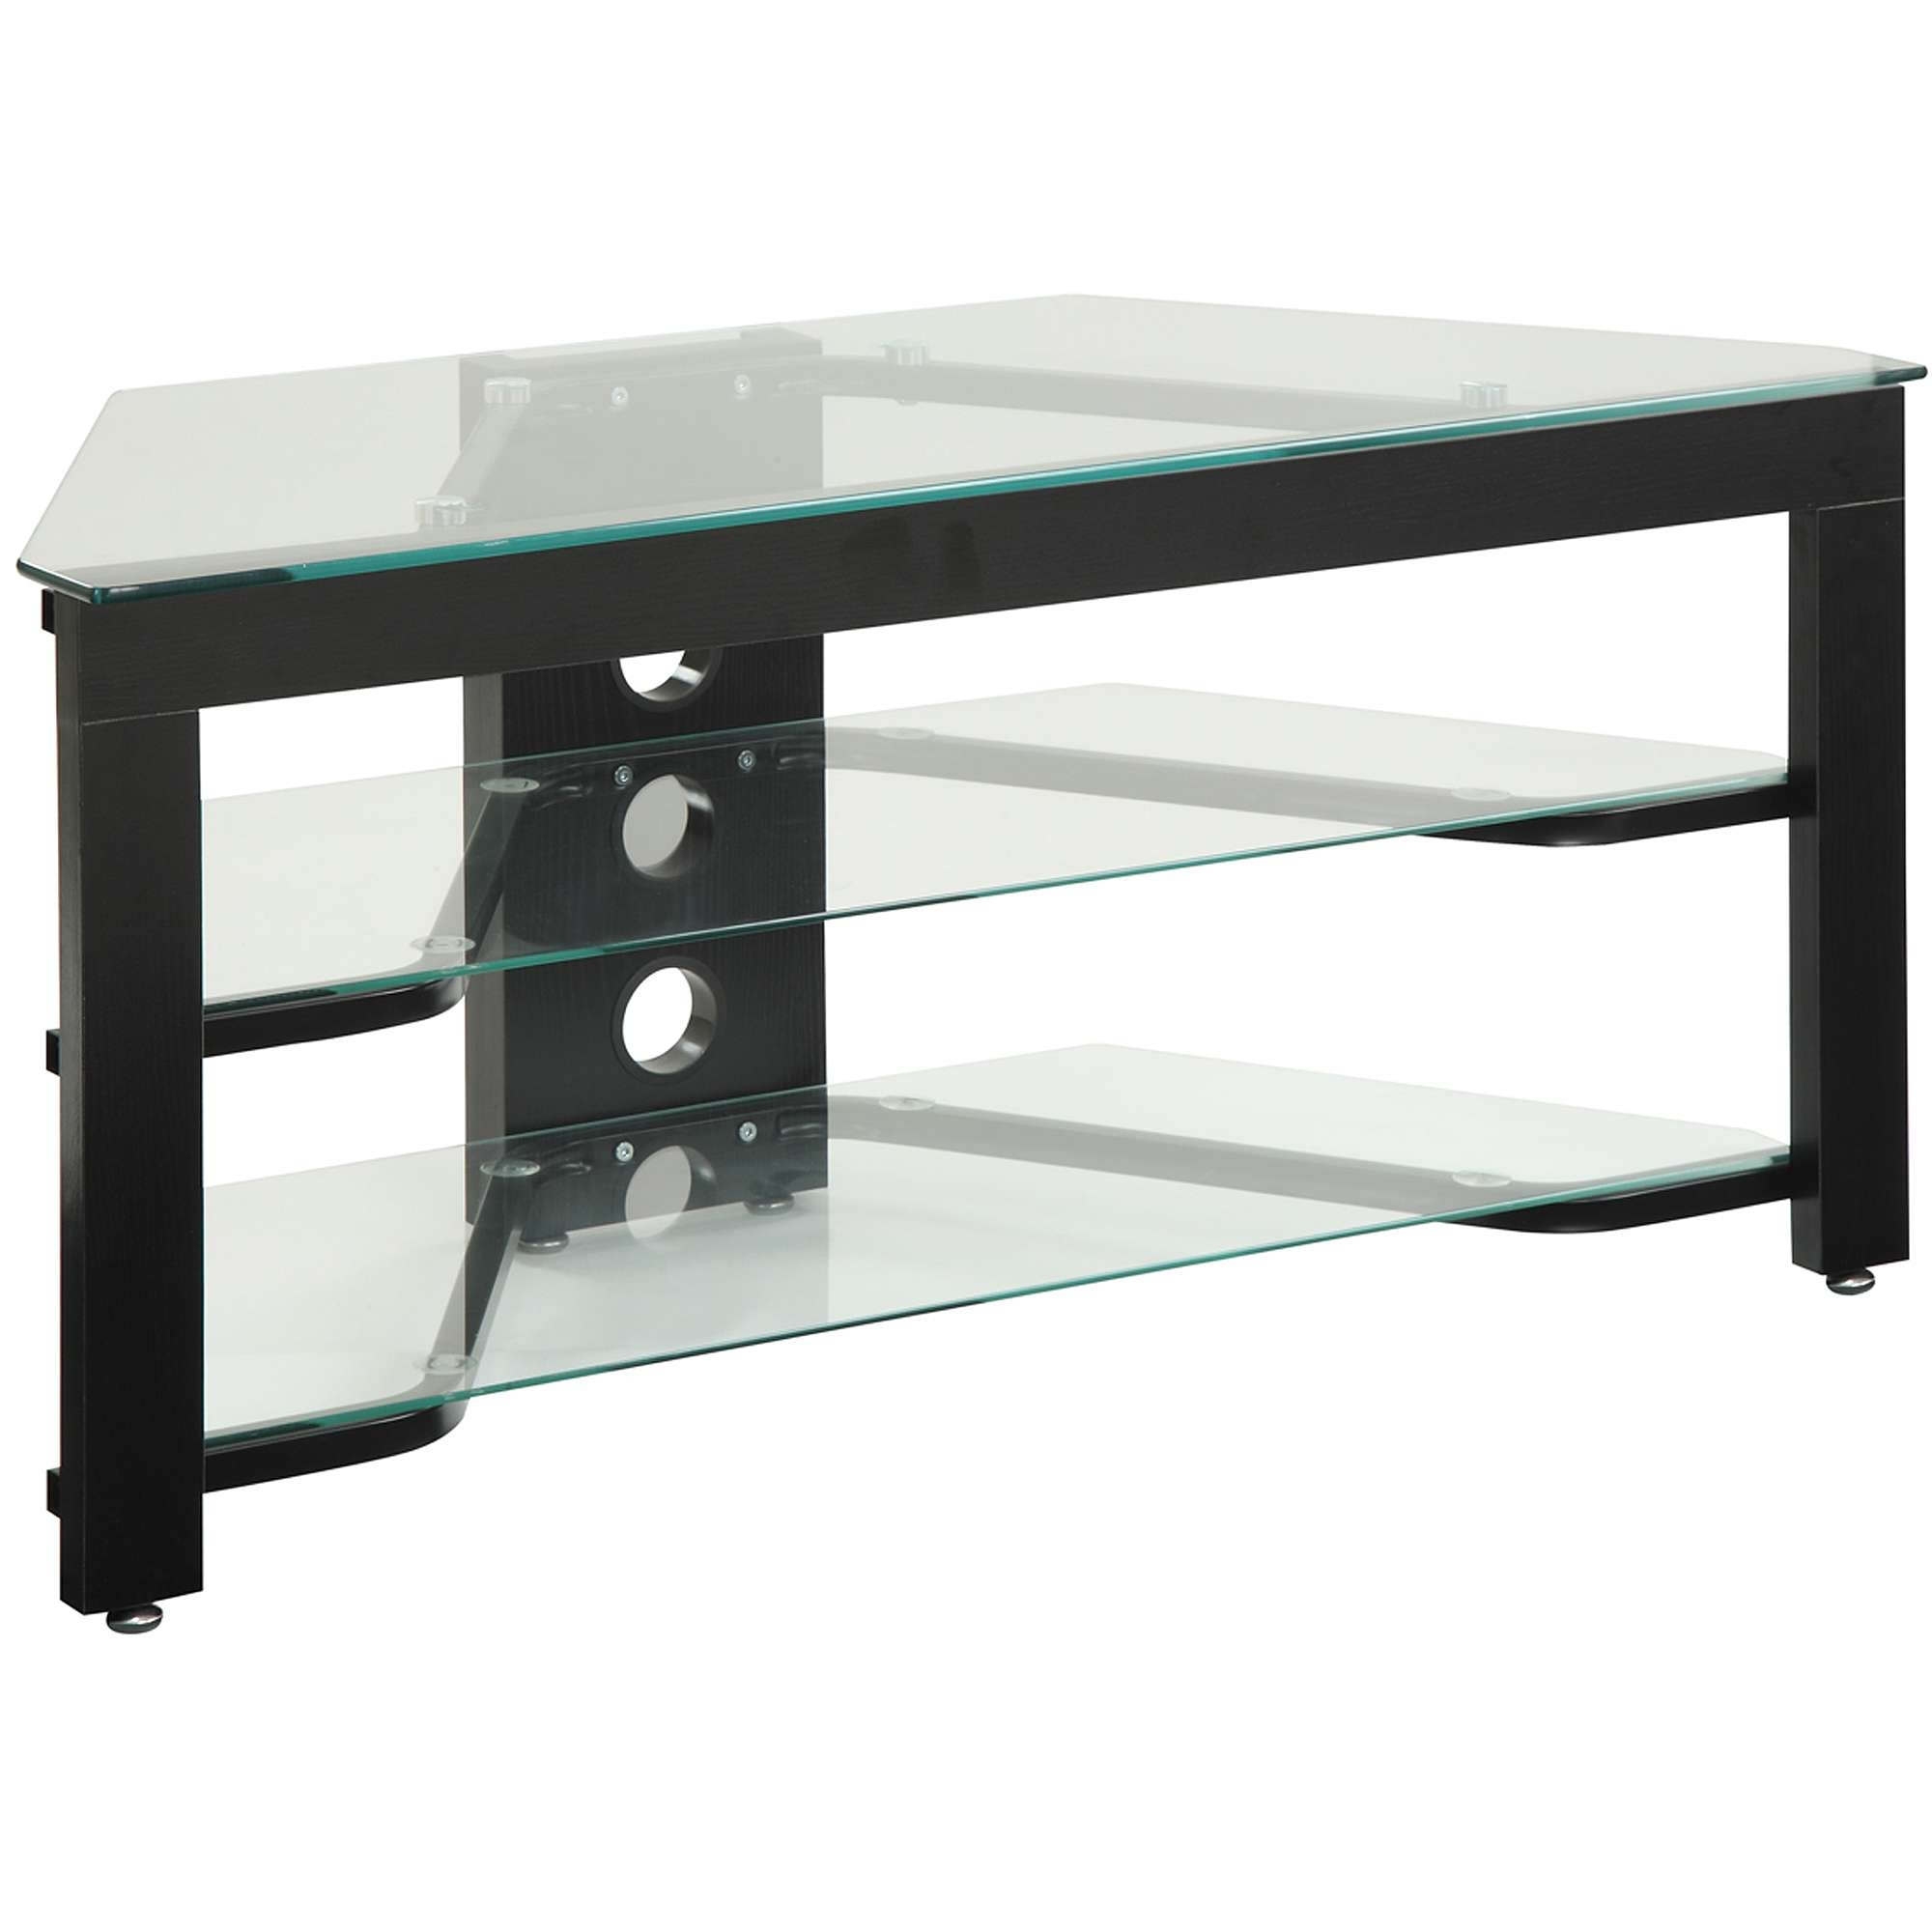 Convenience Concepts Designs2Go Wood And Glass Tv Stand For Tvs Up Throughout Wood Tv Stands With Glass (View 6 of 15)